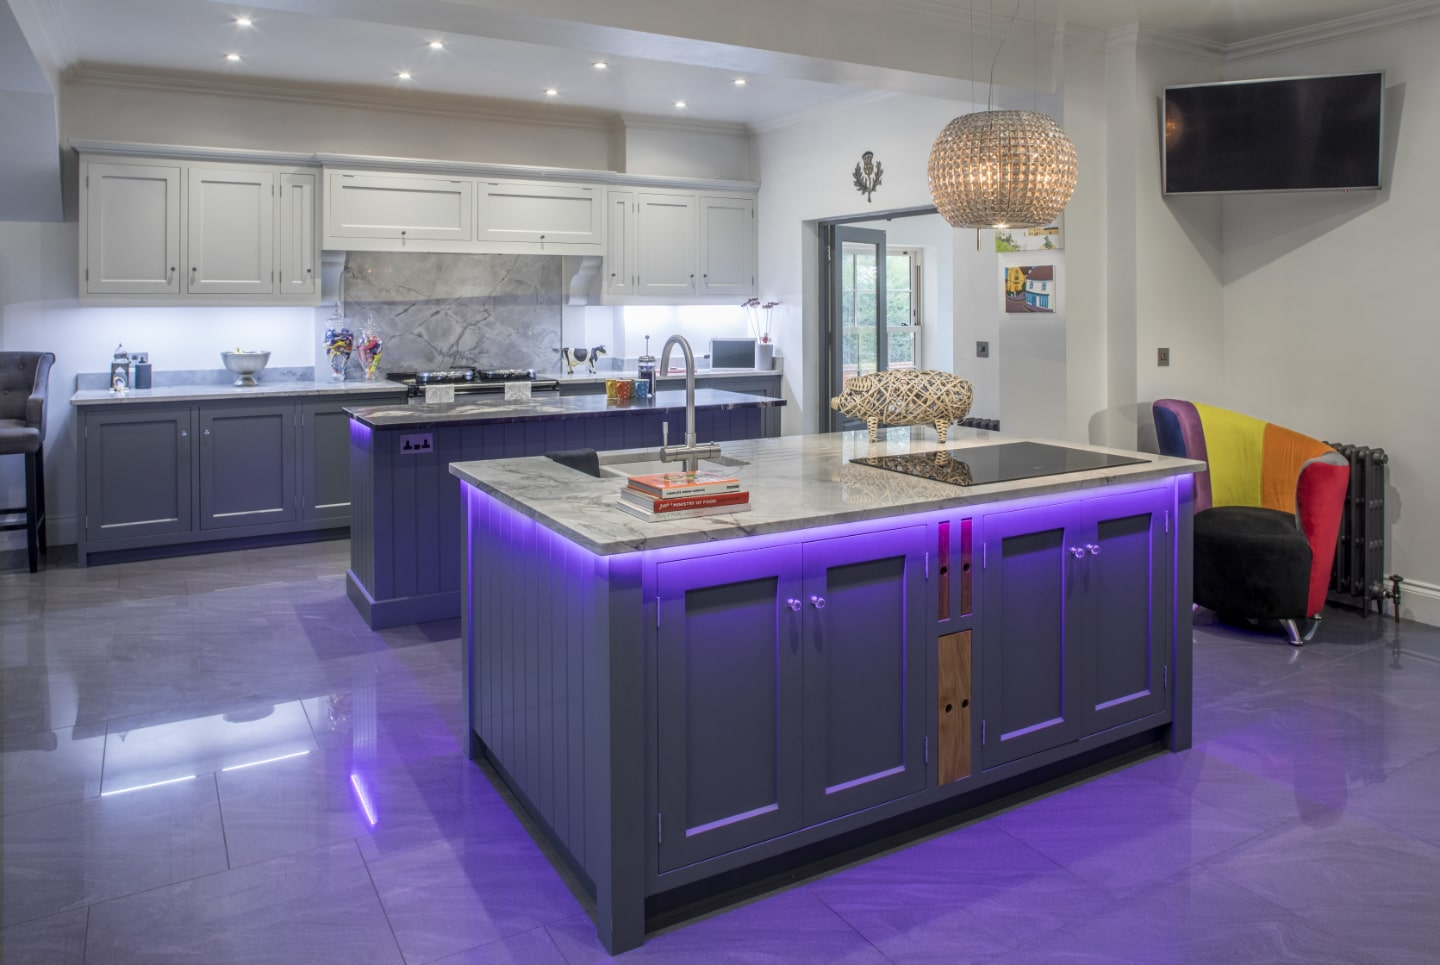 A bespoke kitchen with custom, purple LED lighting under the work tops.